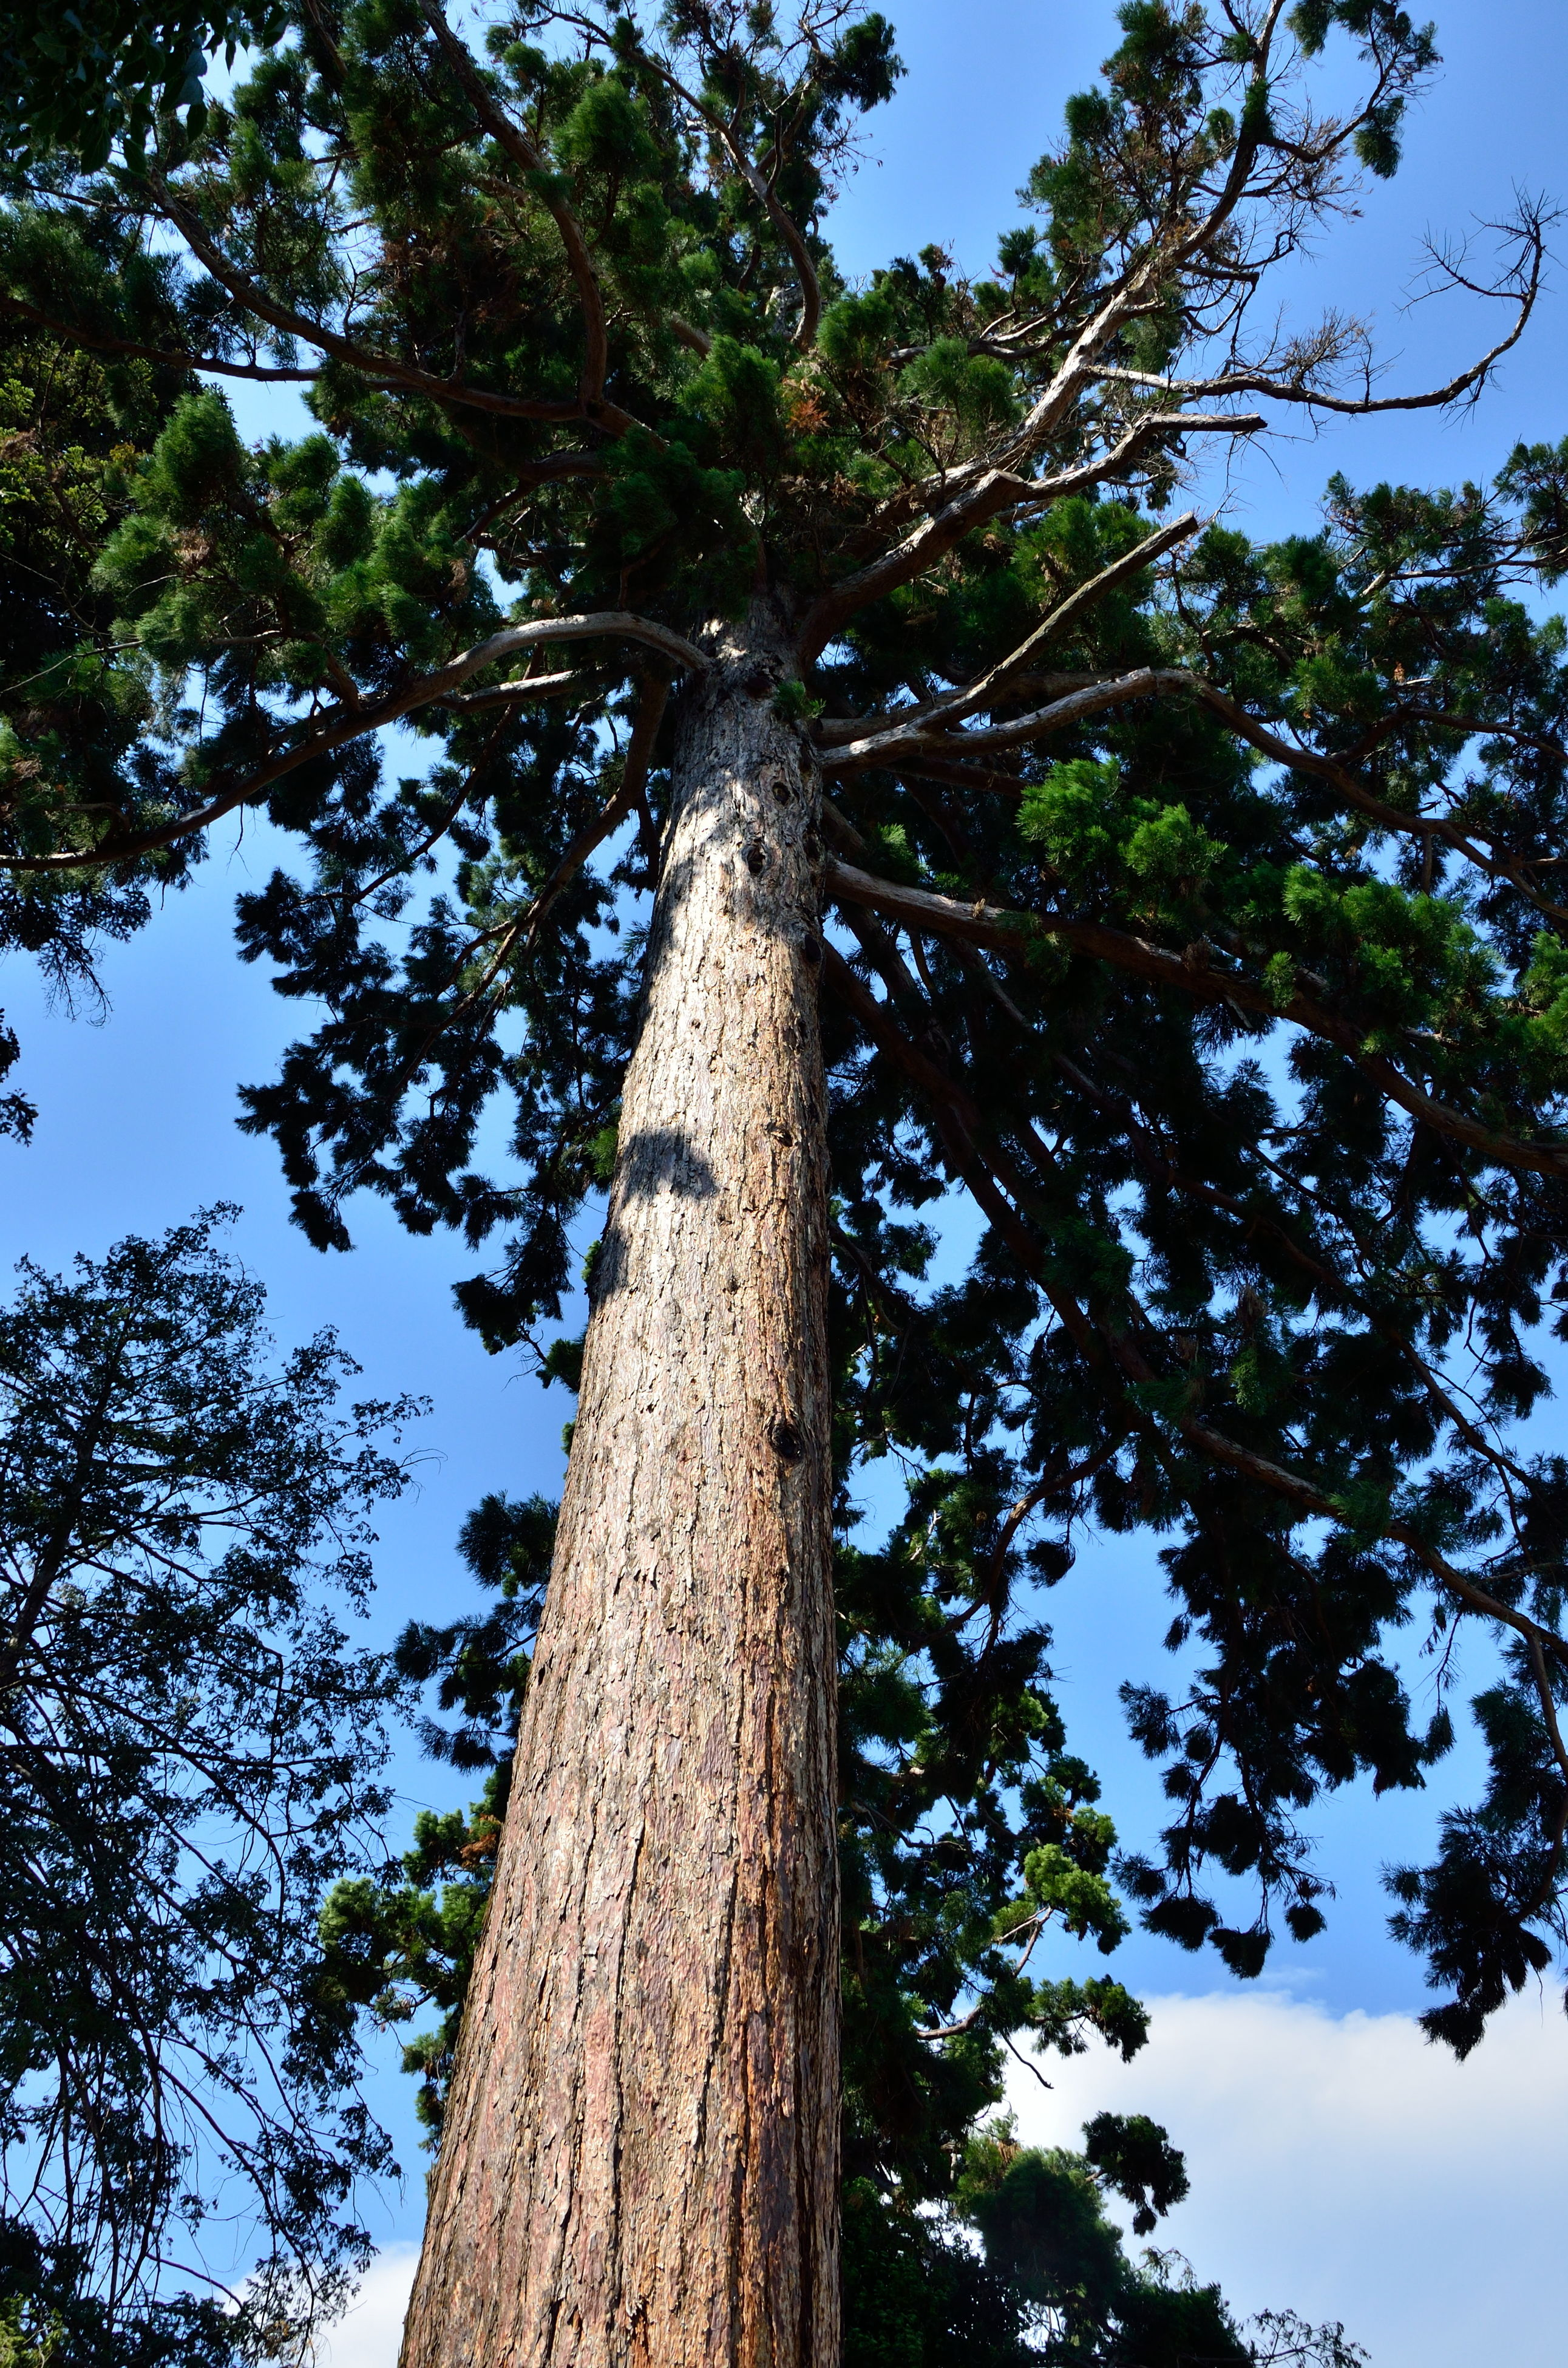 tree, low angle view, tree trunk, growth, branch, nature, clear sky, tranquility, sky, tall - high, wood - material, day, blue, outdoors, green color, beauty in nature, no people, tall, sunlight, forest